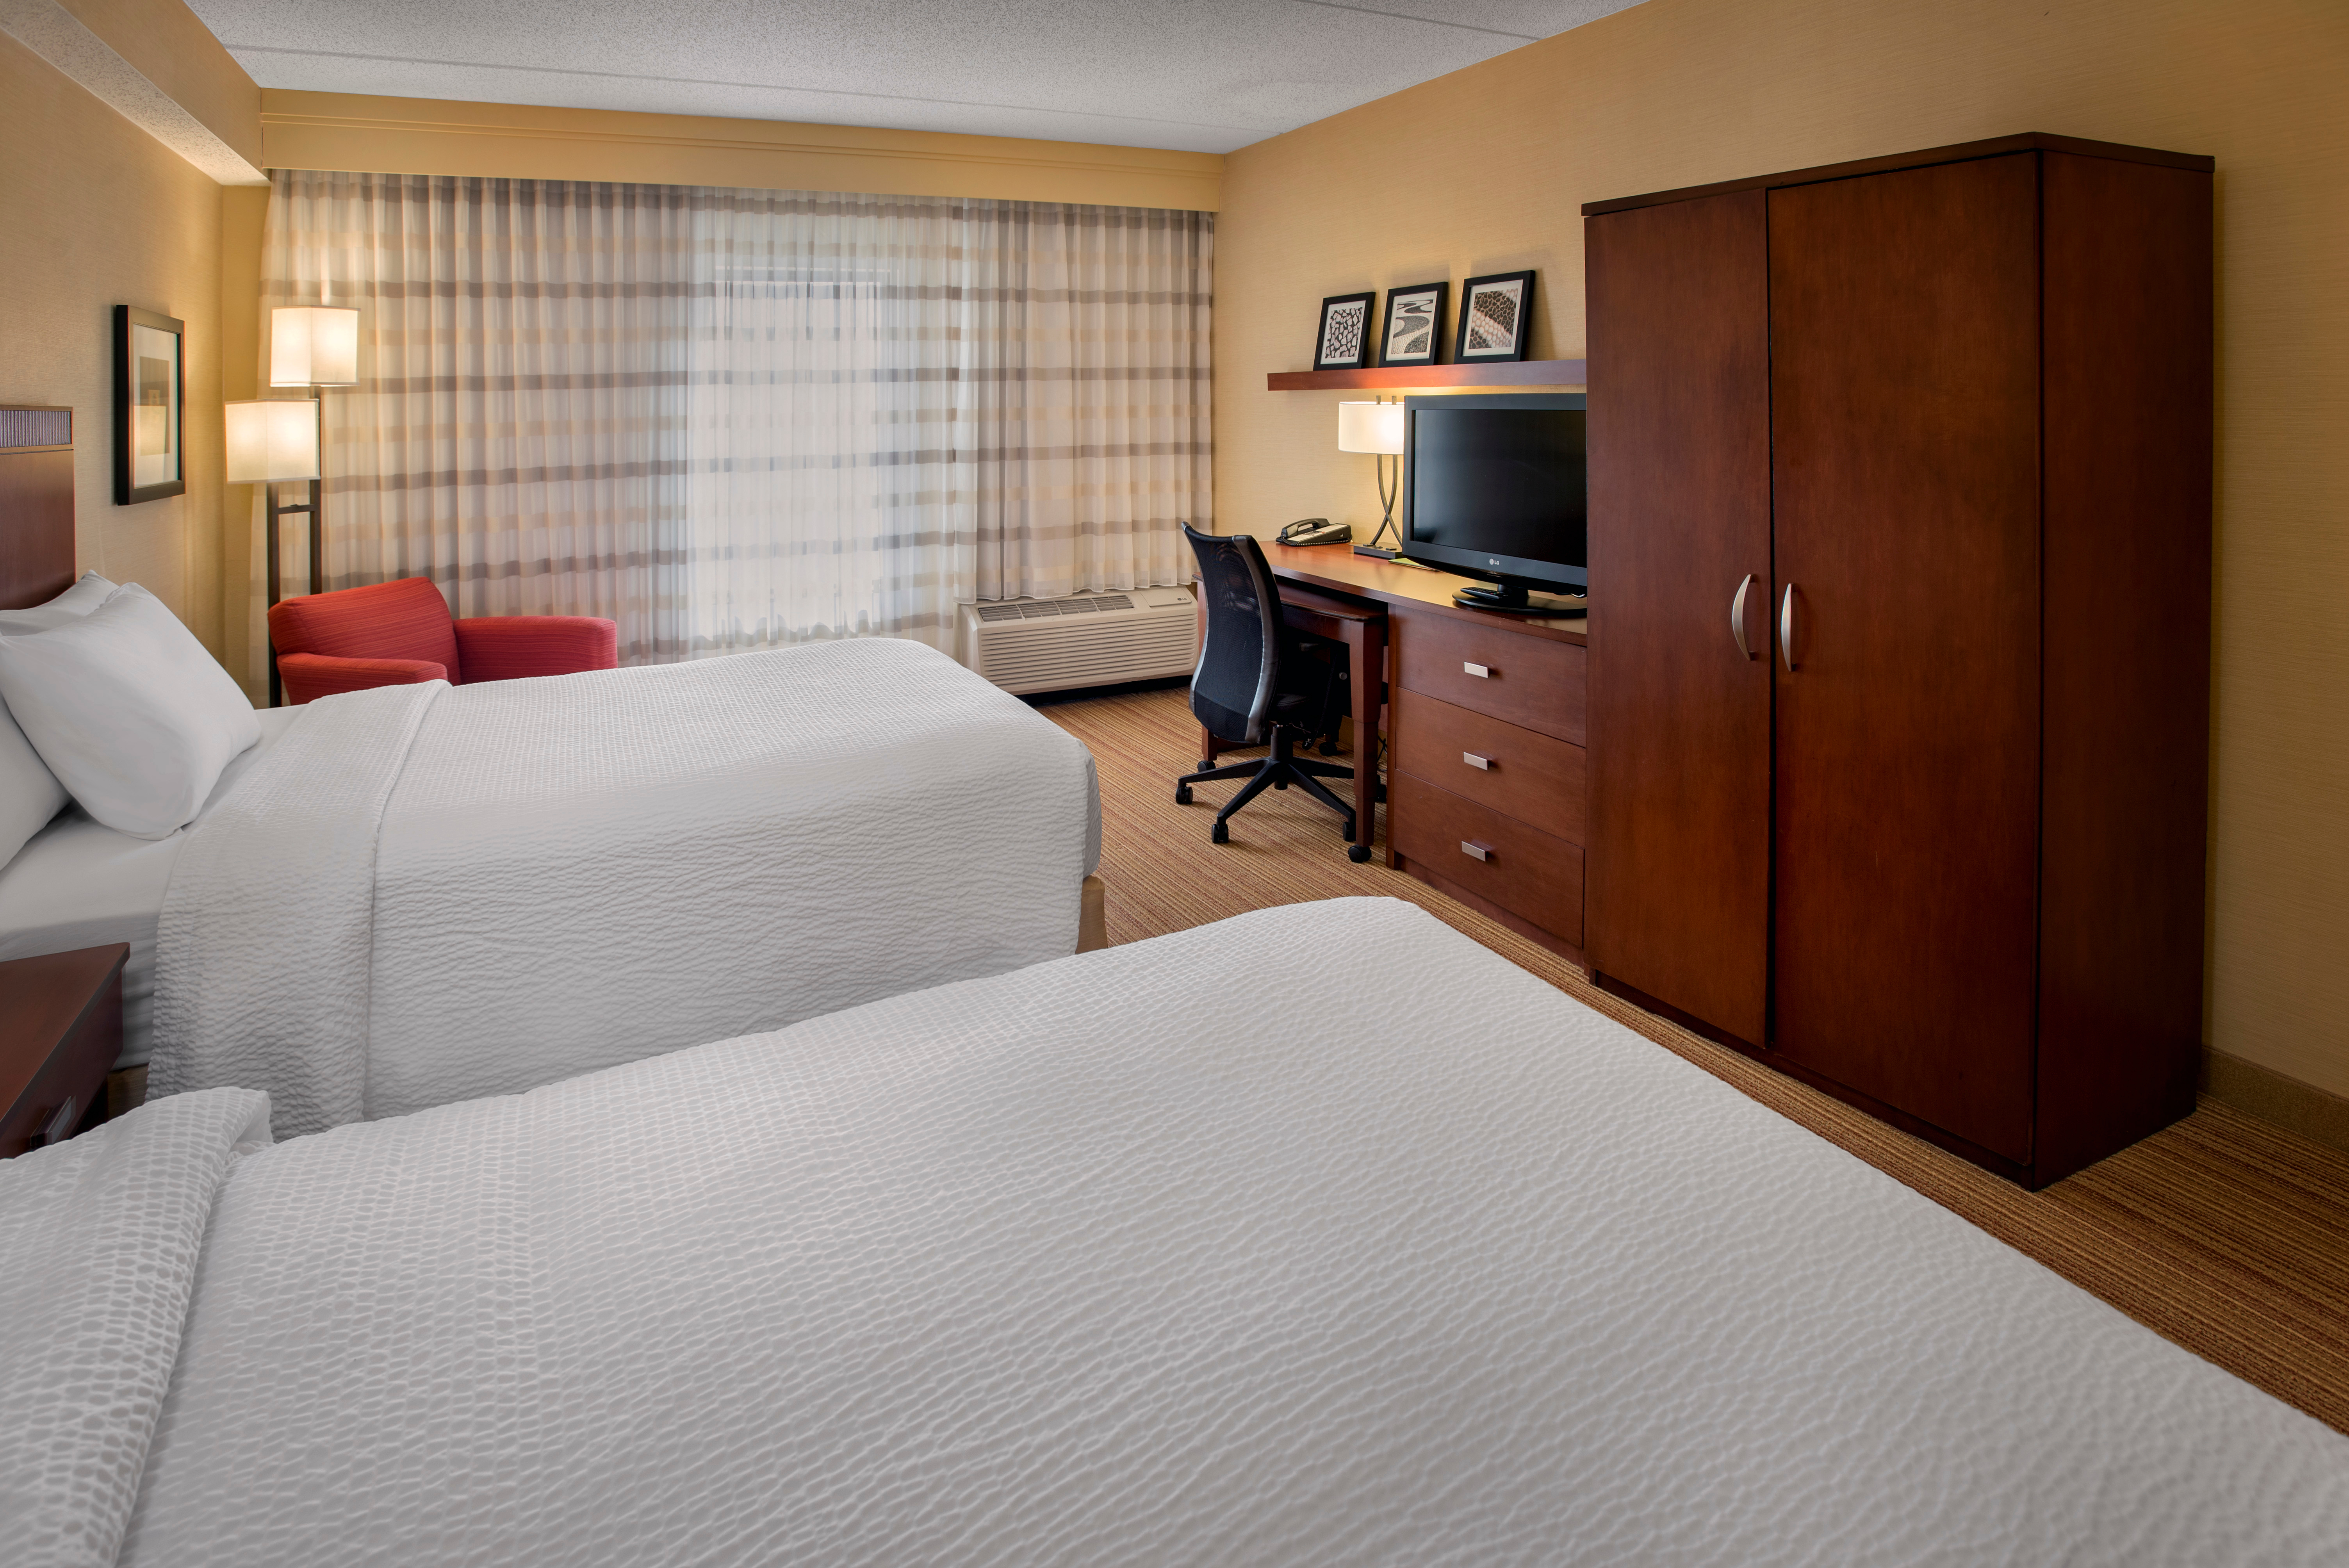 Courtyard by Marriott Boston Milford image 19